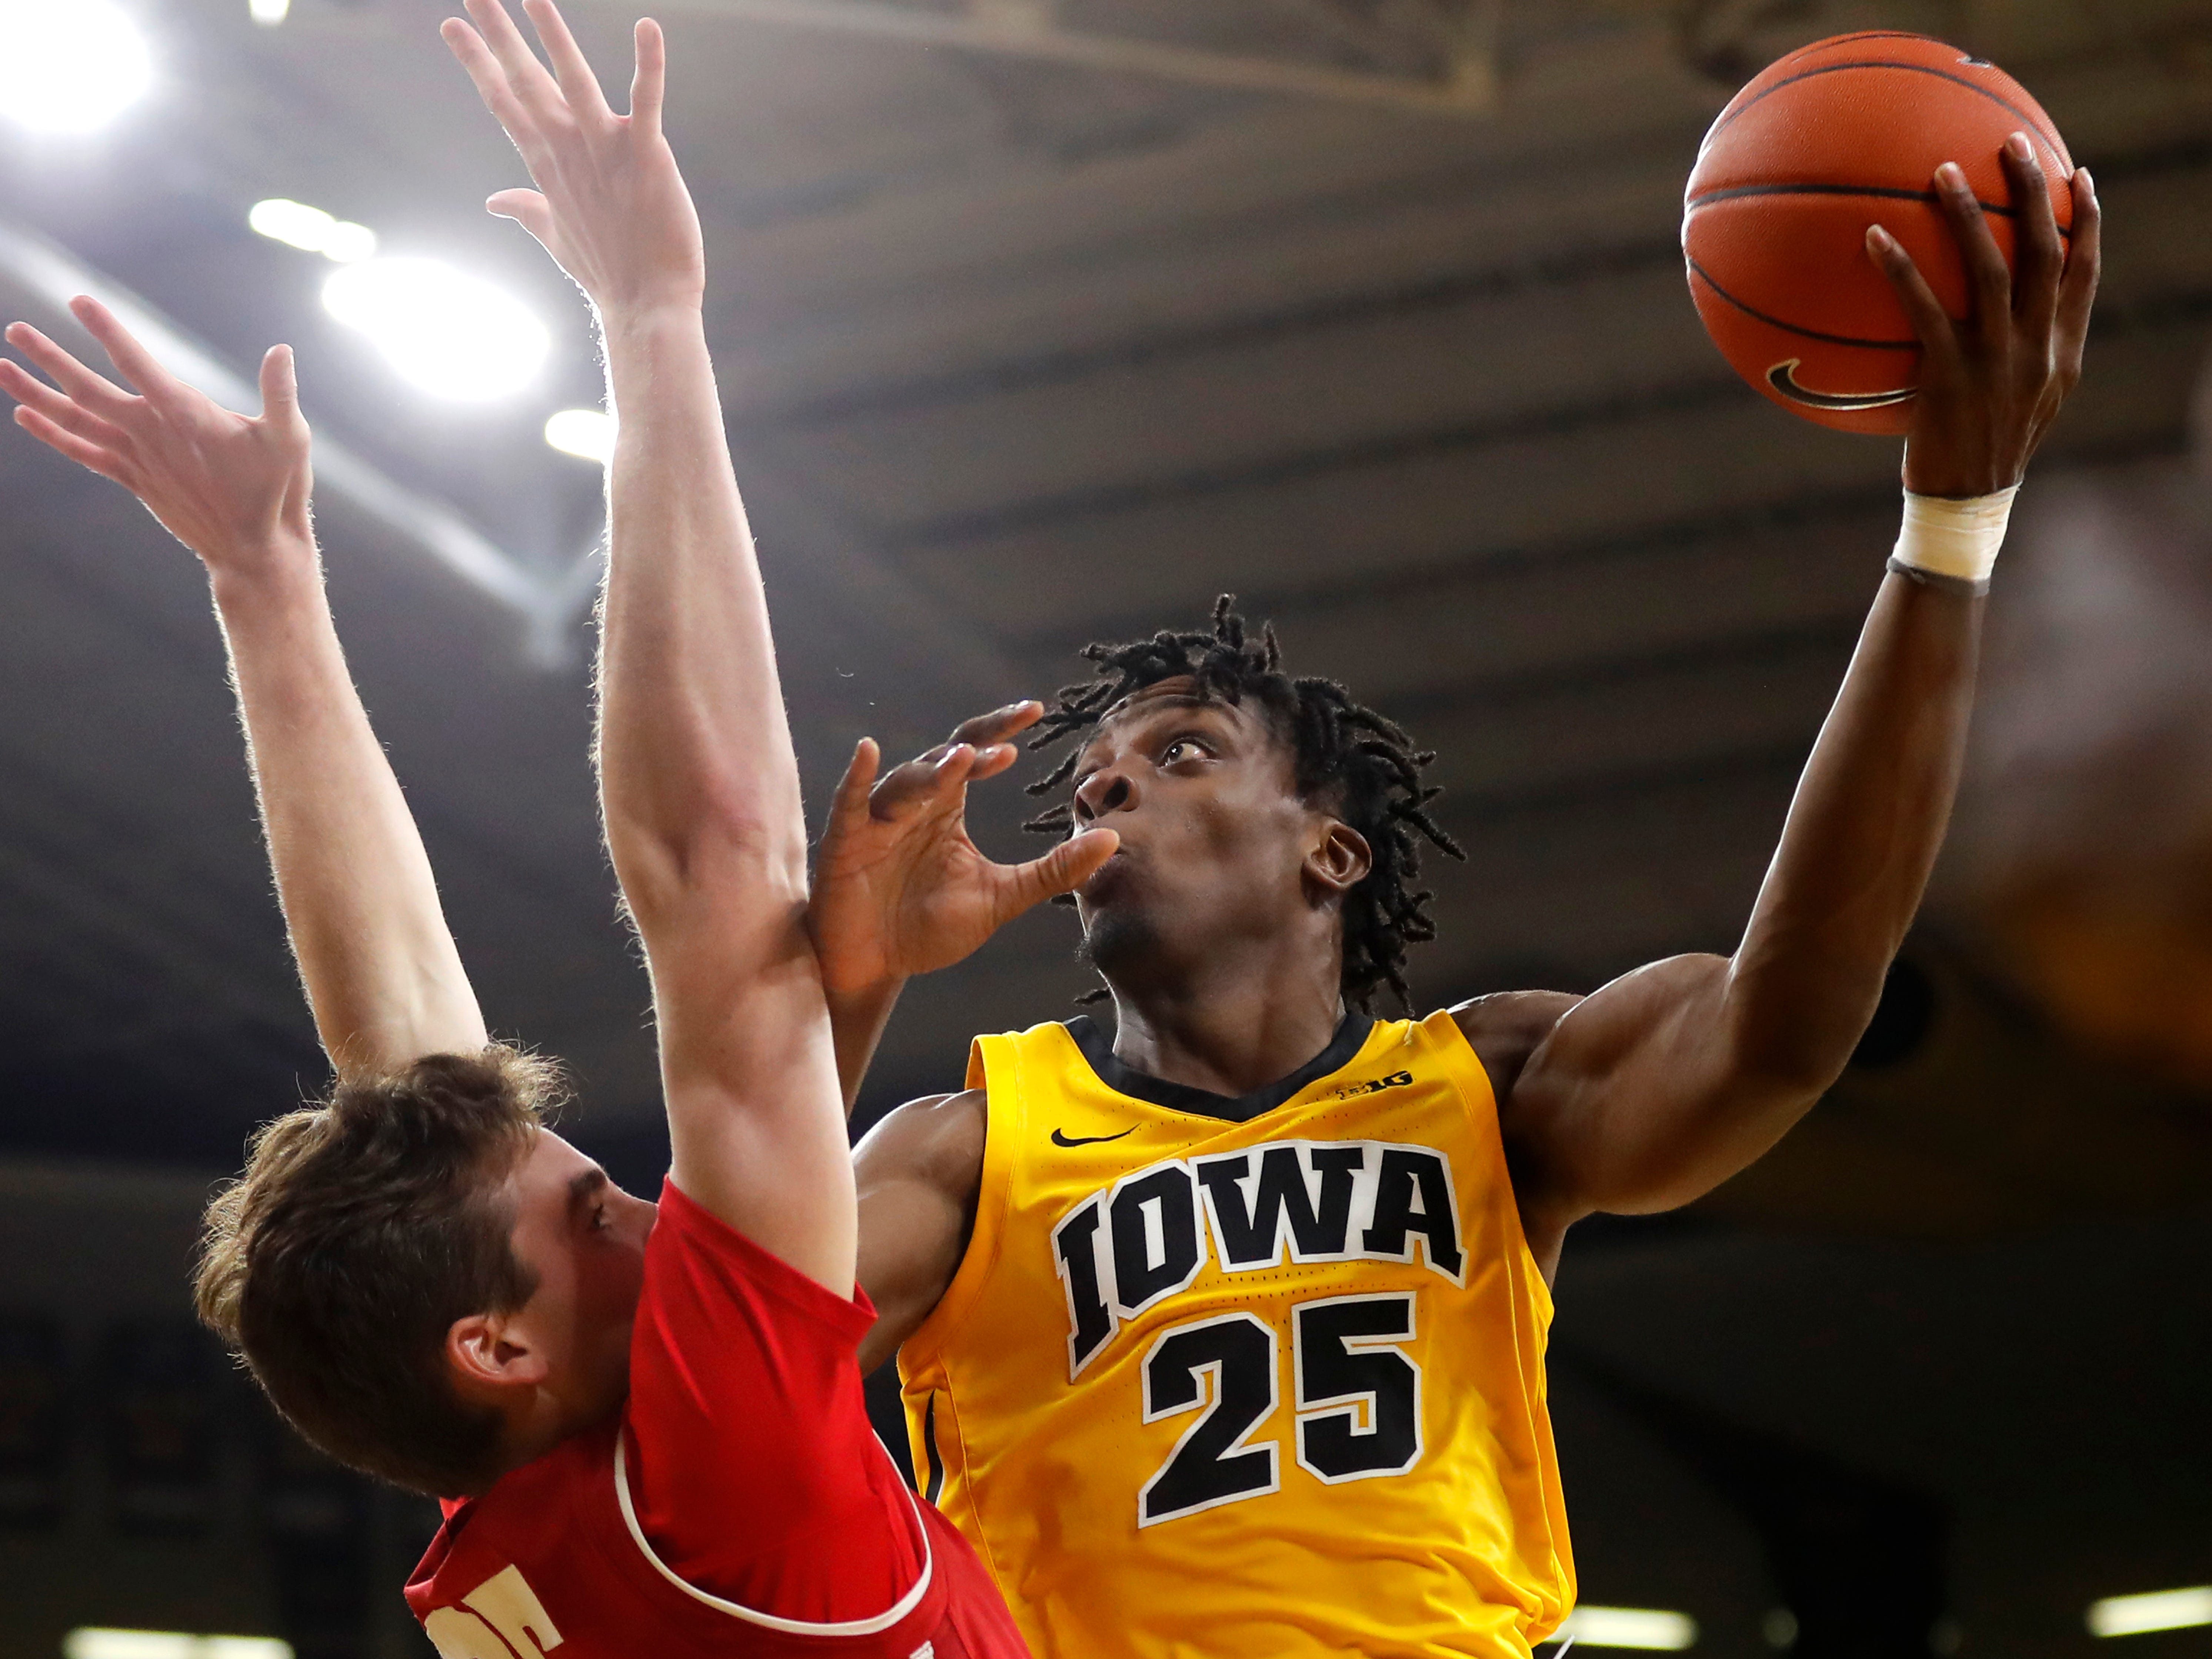 Iowa forward Tyler Cook (25) shoots over Wisconsin forward Nate Reuvers during the second half of an NCAA college basketball game Friday, Nov. 30, 2018, in Iowa City, Iowa. Wisconsin won 72-66. (AP Photo/Charlie Neibergall)